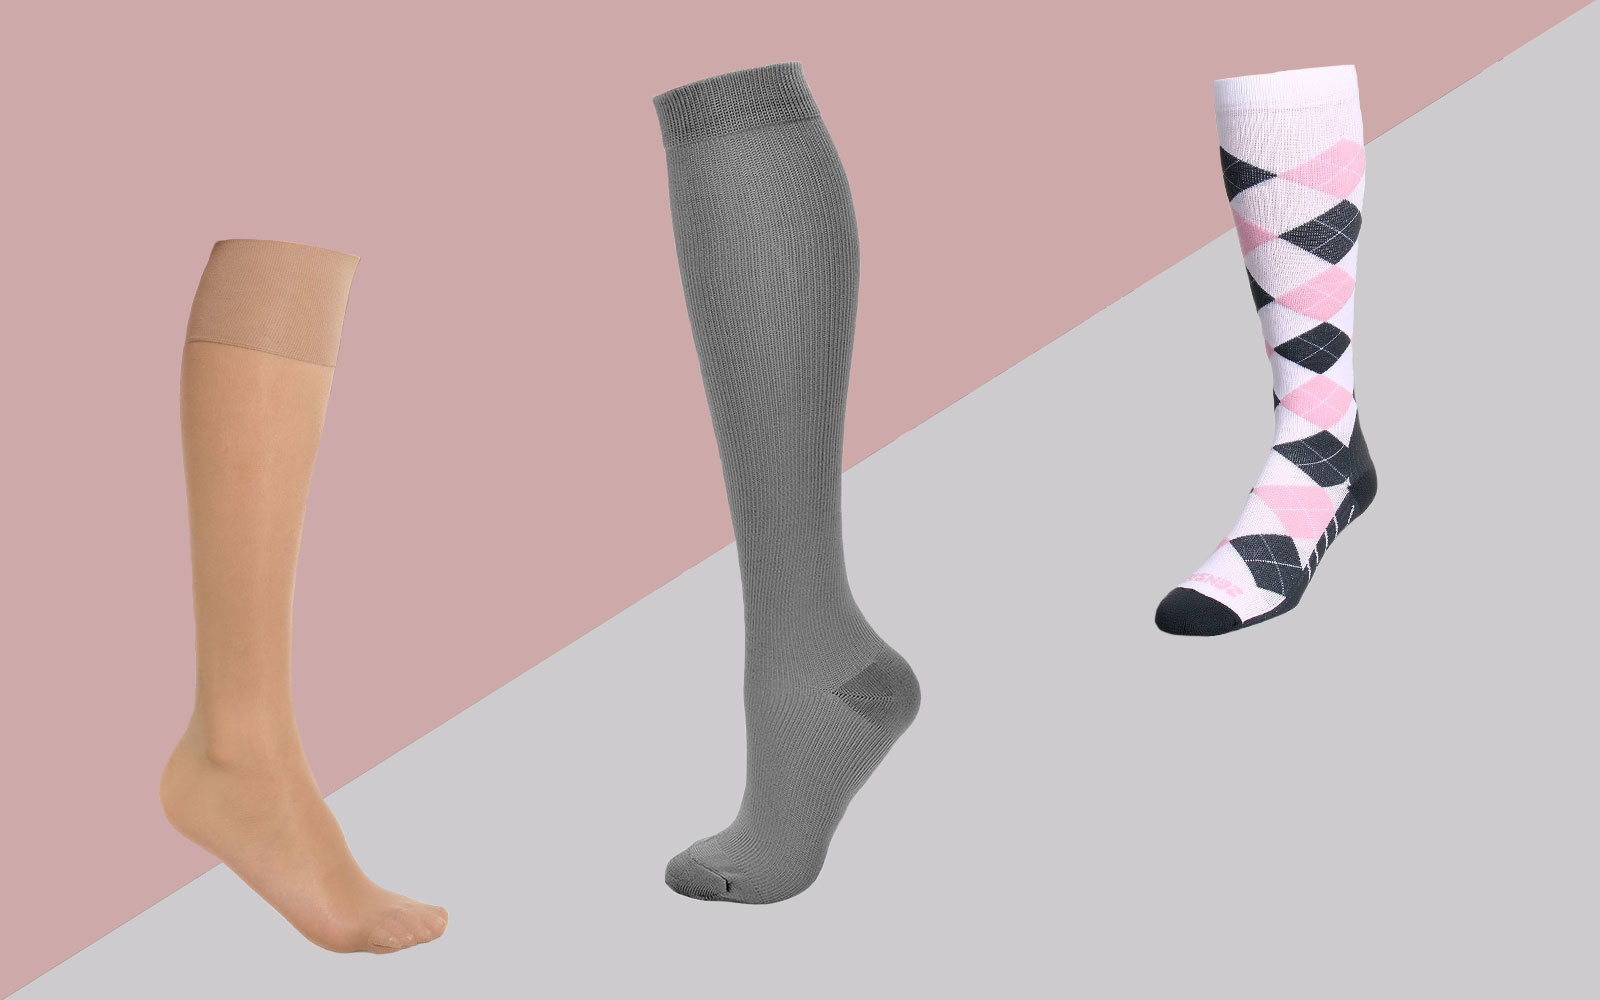 54e744ae1 The 9 Best Compression Socks for Women | Travel + Leisure